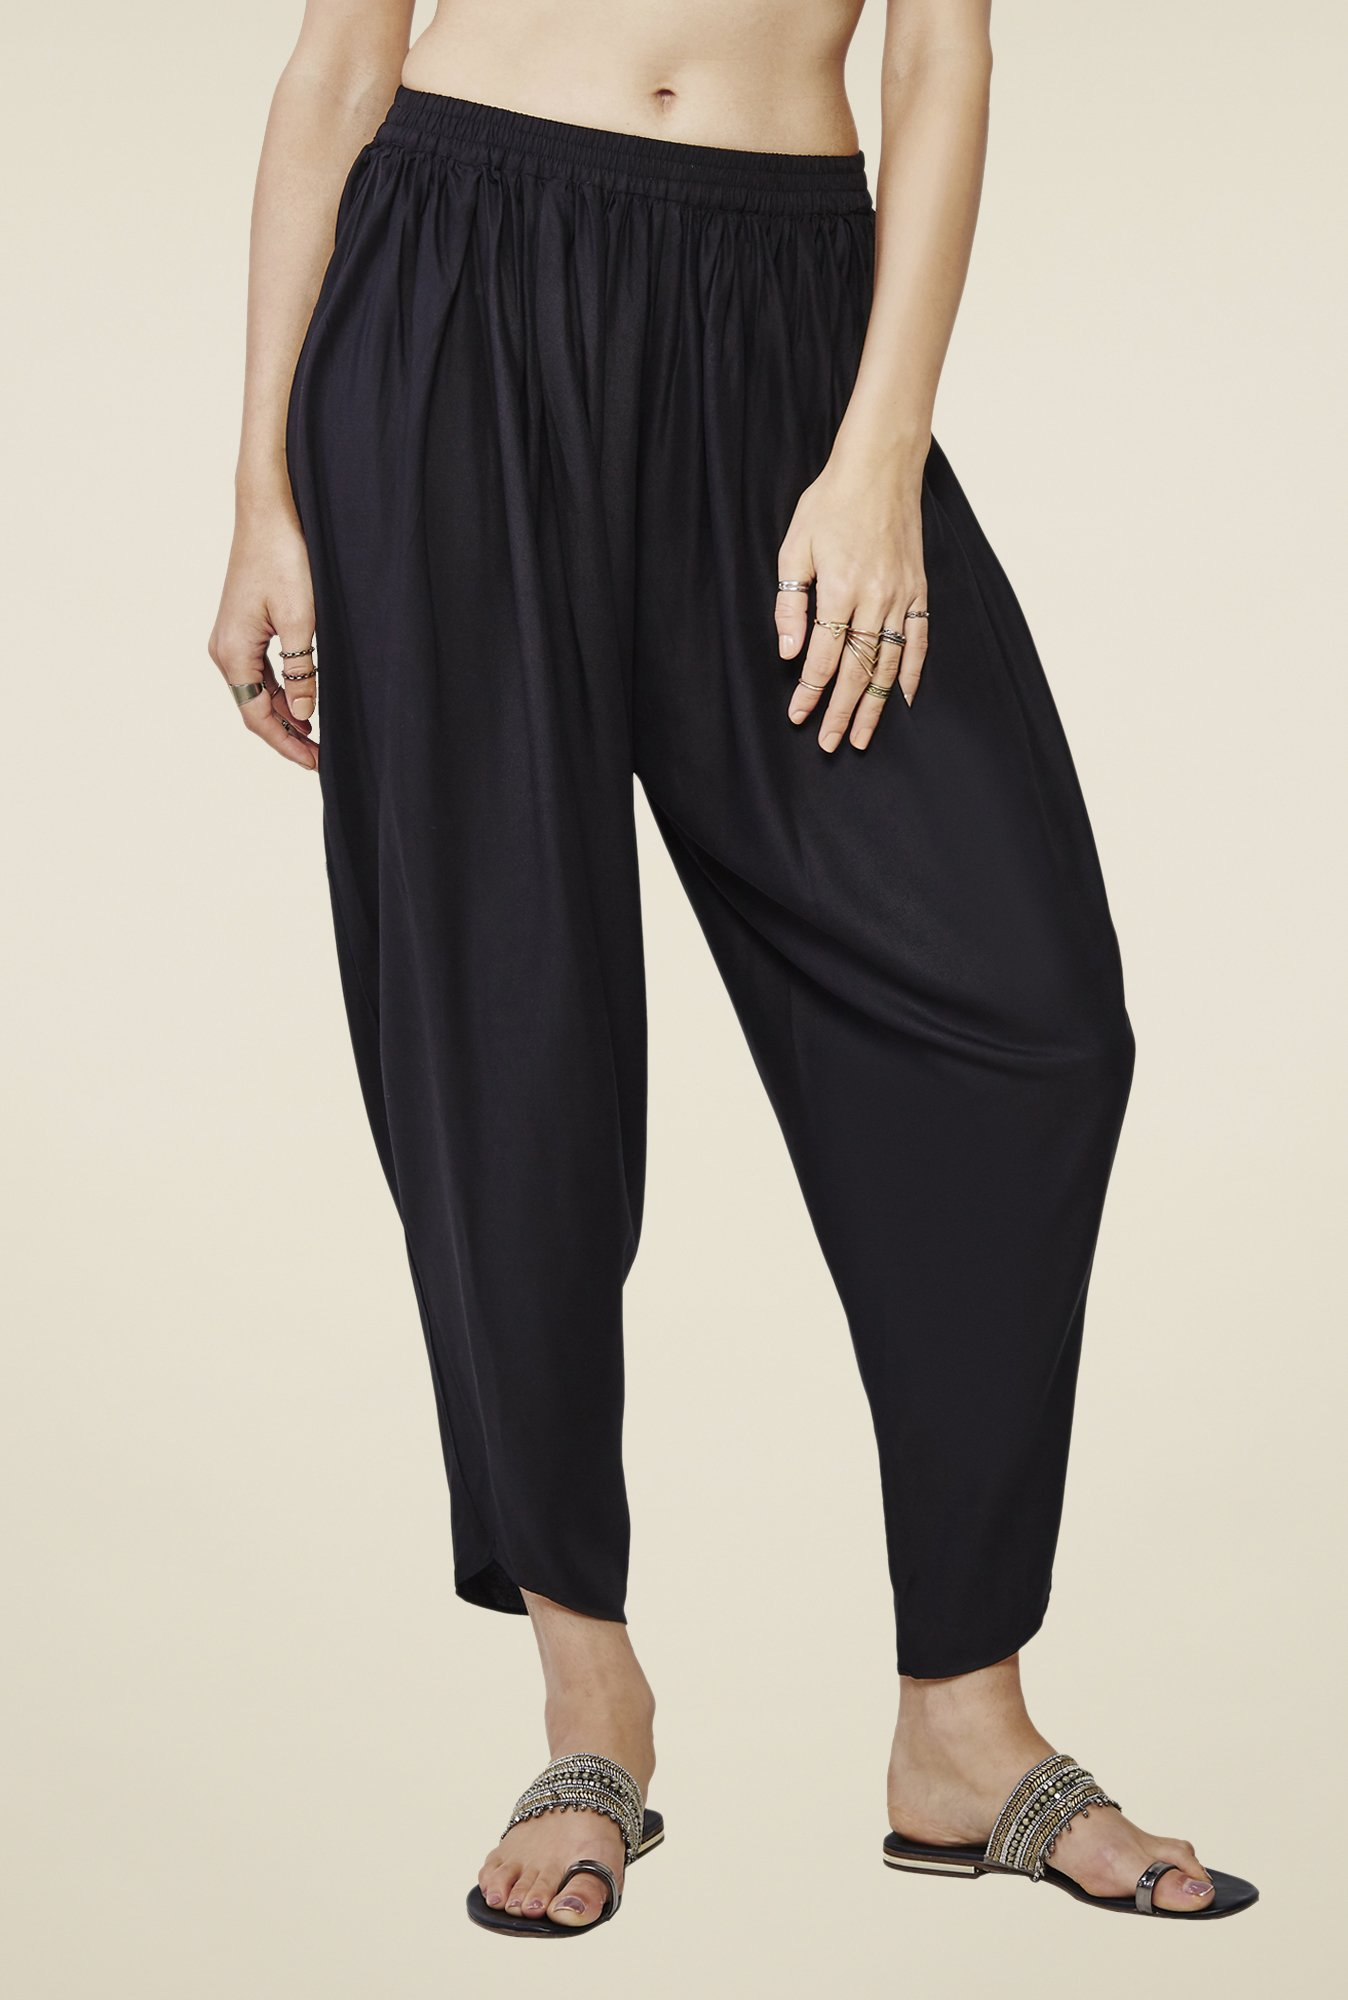 Global Desi Black Solid Pants